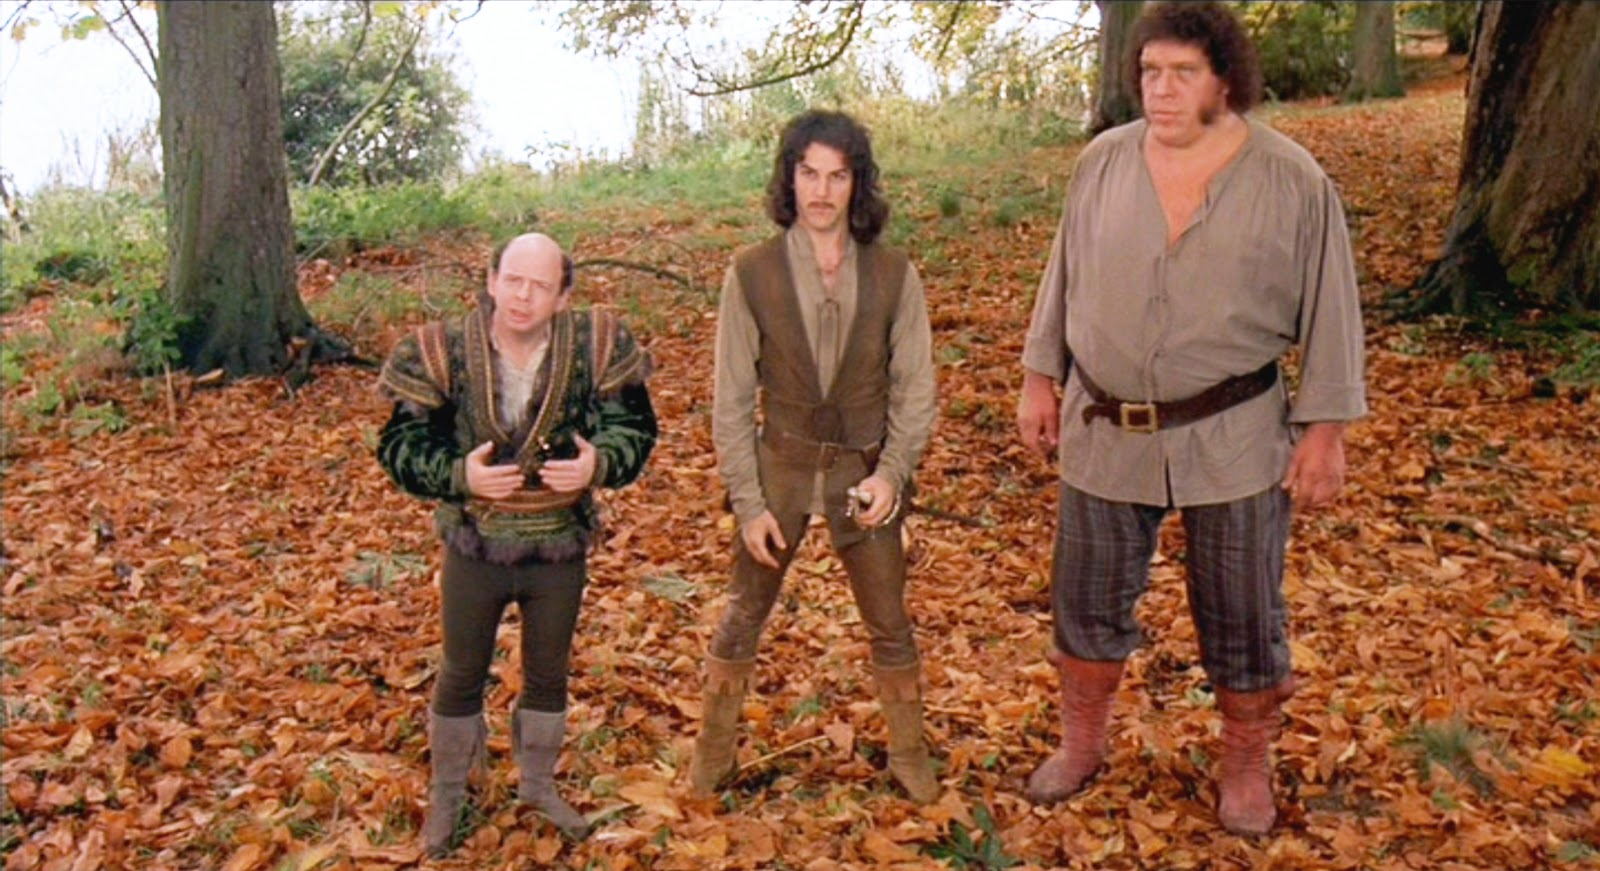 Wallace Shawn as Vizzini, Mandy Patinkin as Inigo Montoya and André the Giant as Fezzik The Princess Bride picture image